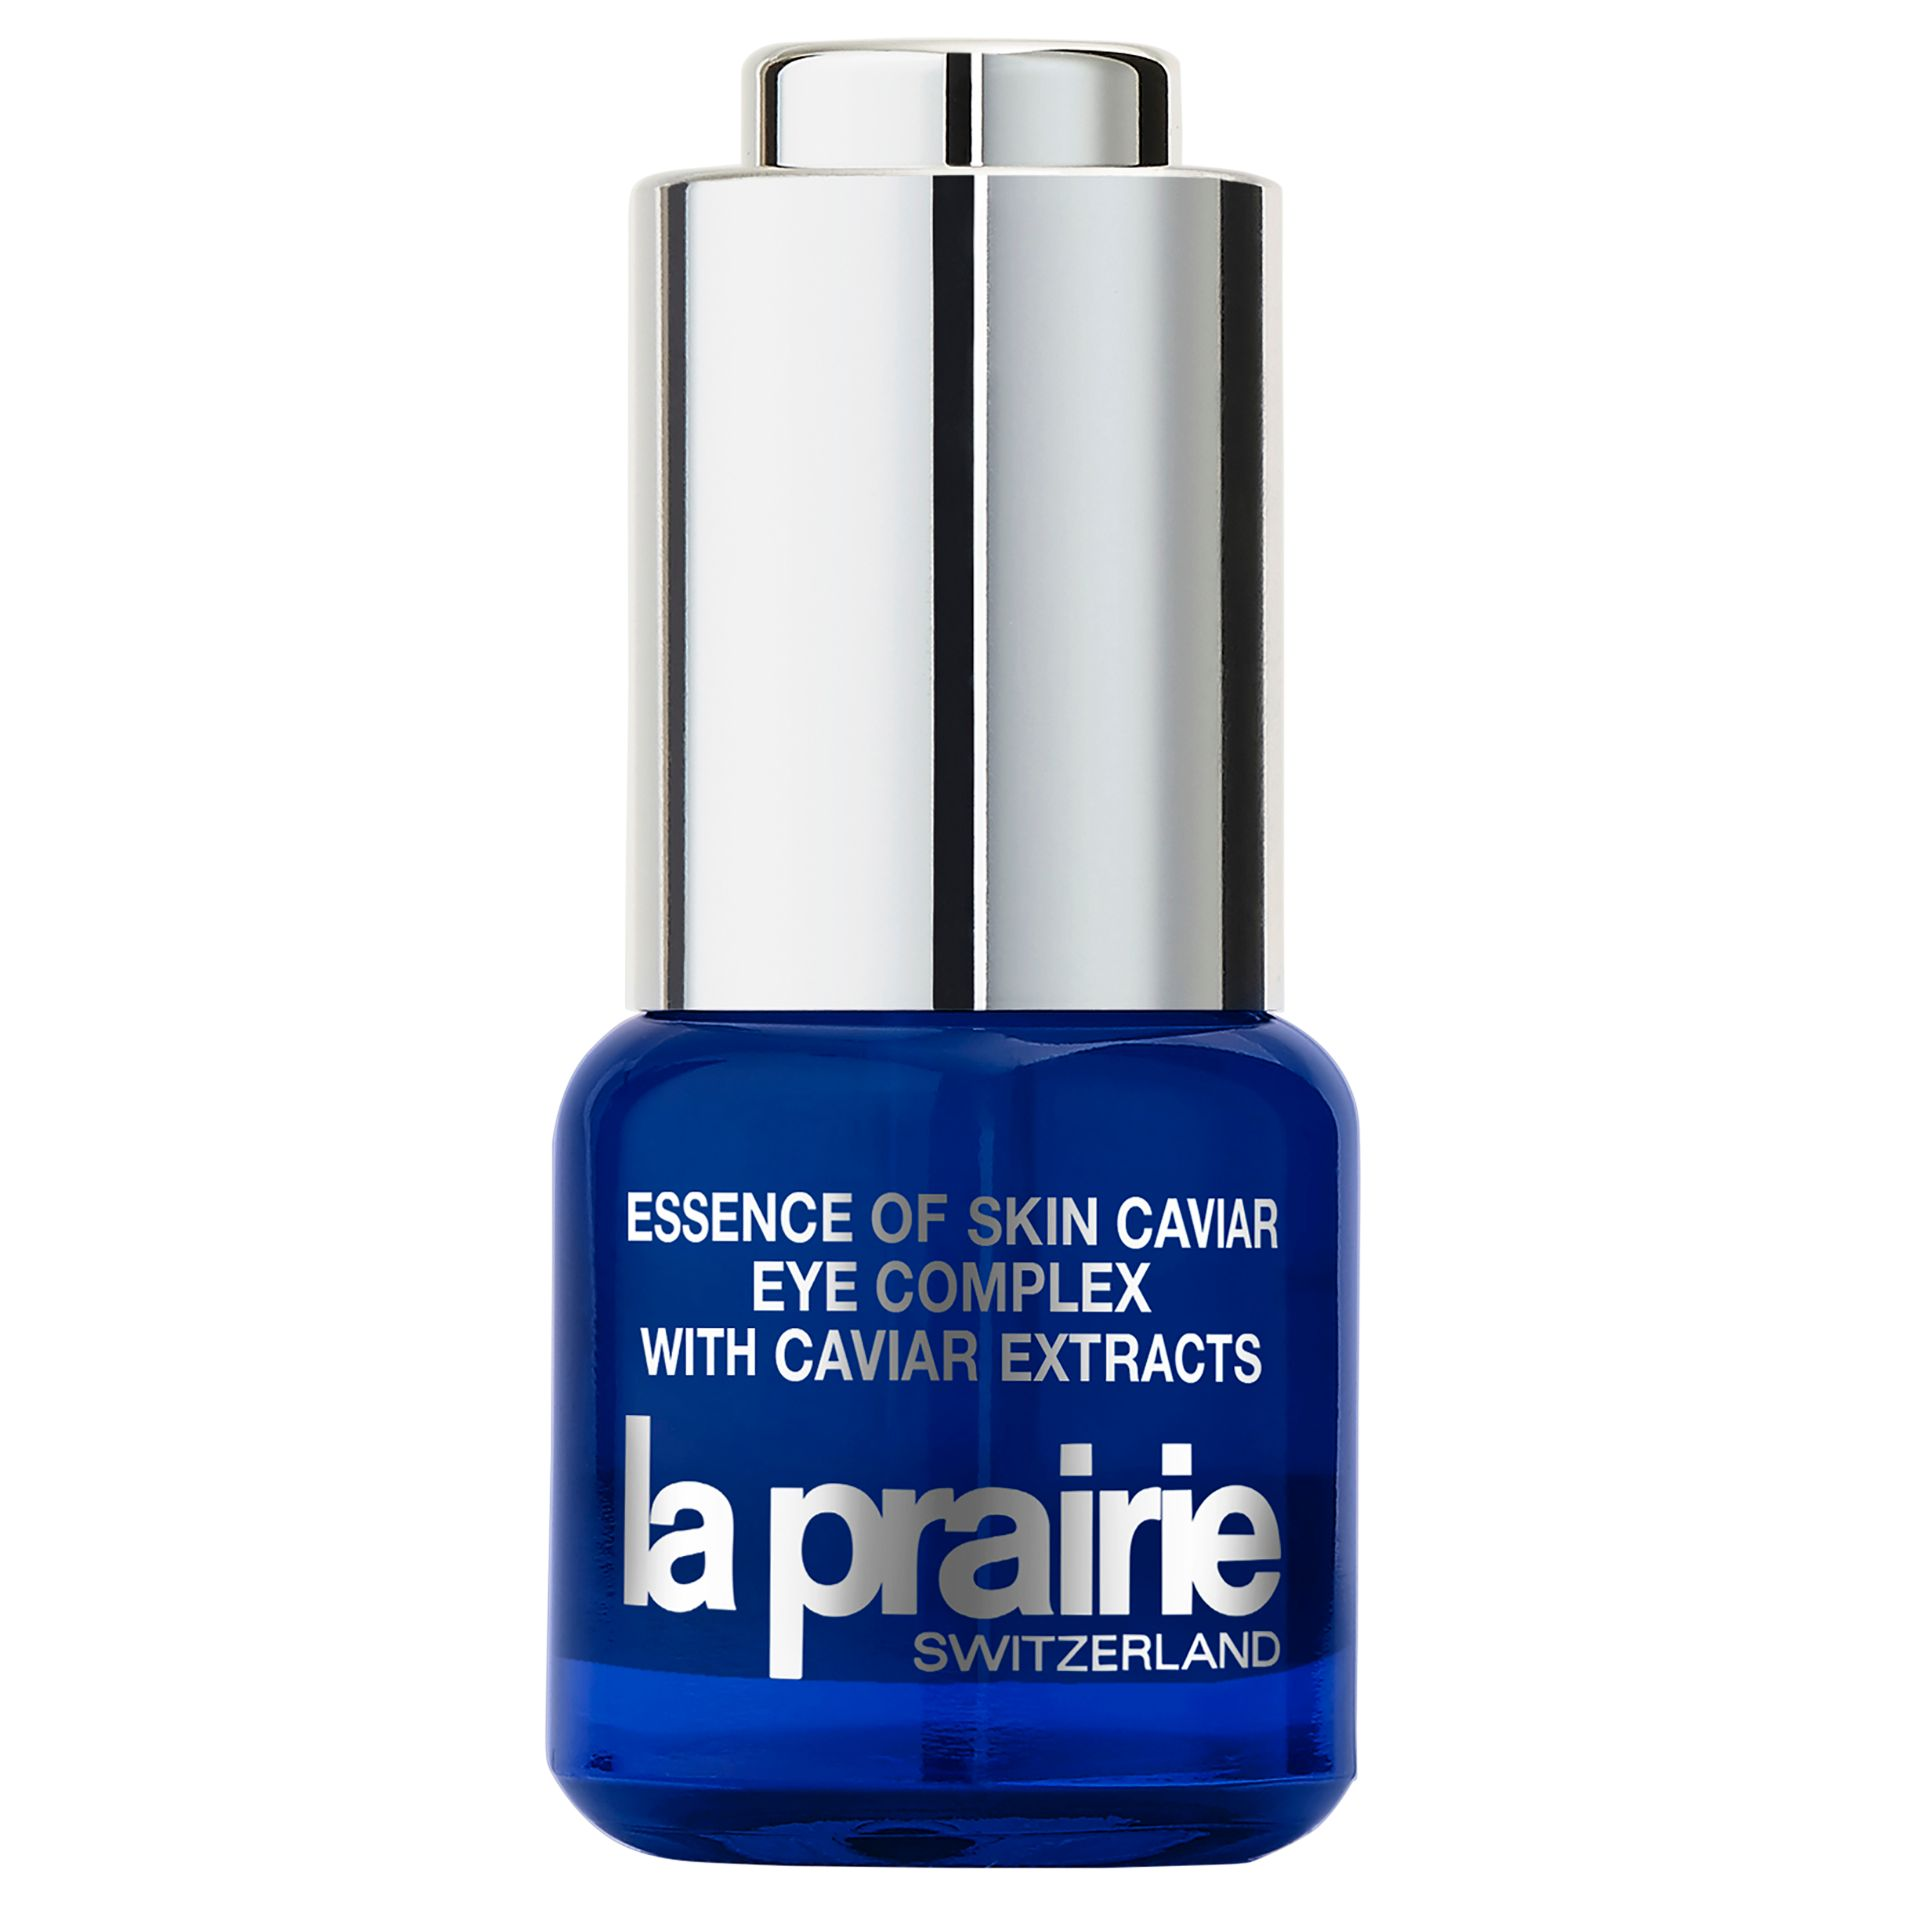 La Prairie La Prairie Essence of Skin Caviar Eye Complex with Caviar Extracts, 15ml